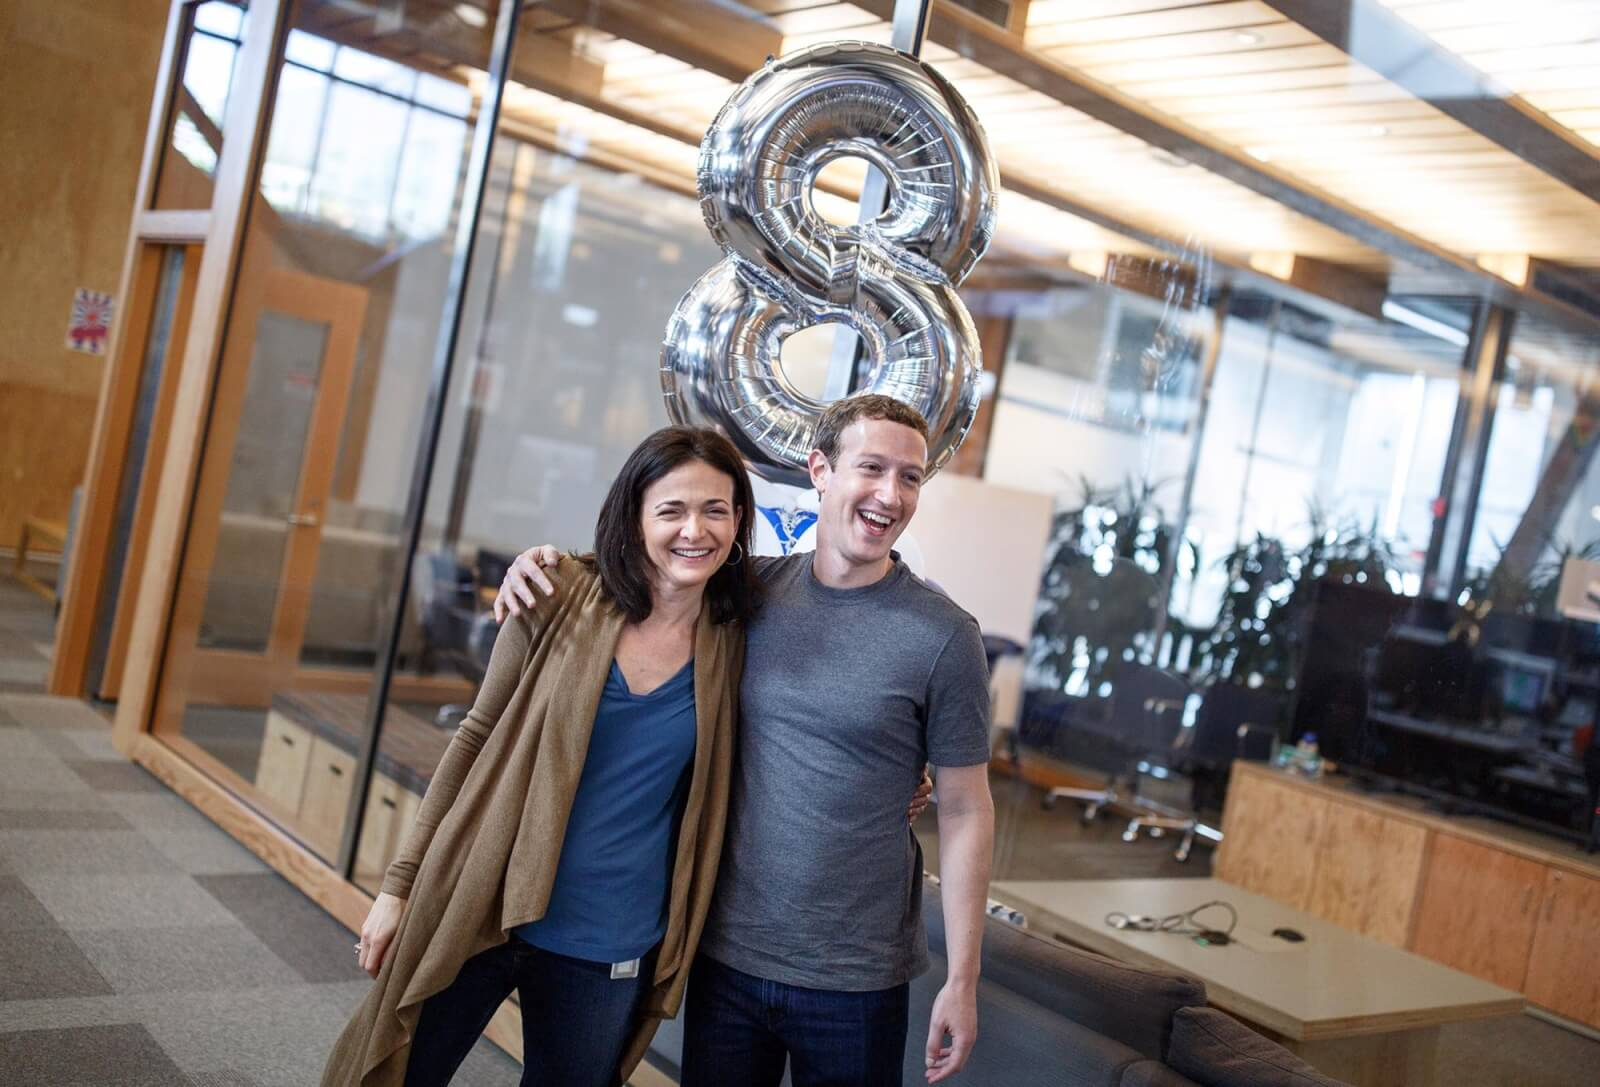 sheryl-sandberg-facebook-coo-celebrating-her-8-year-faceversary